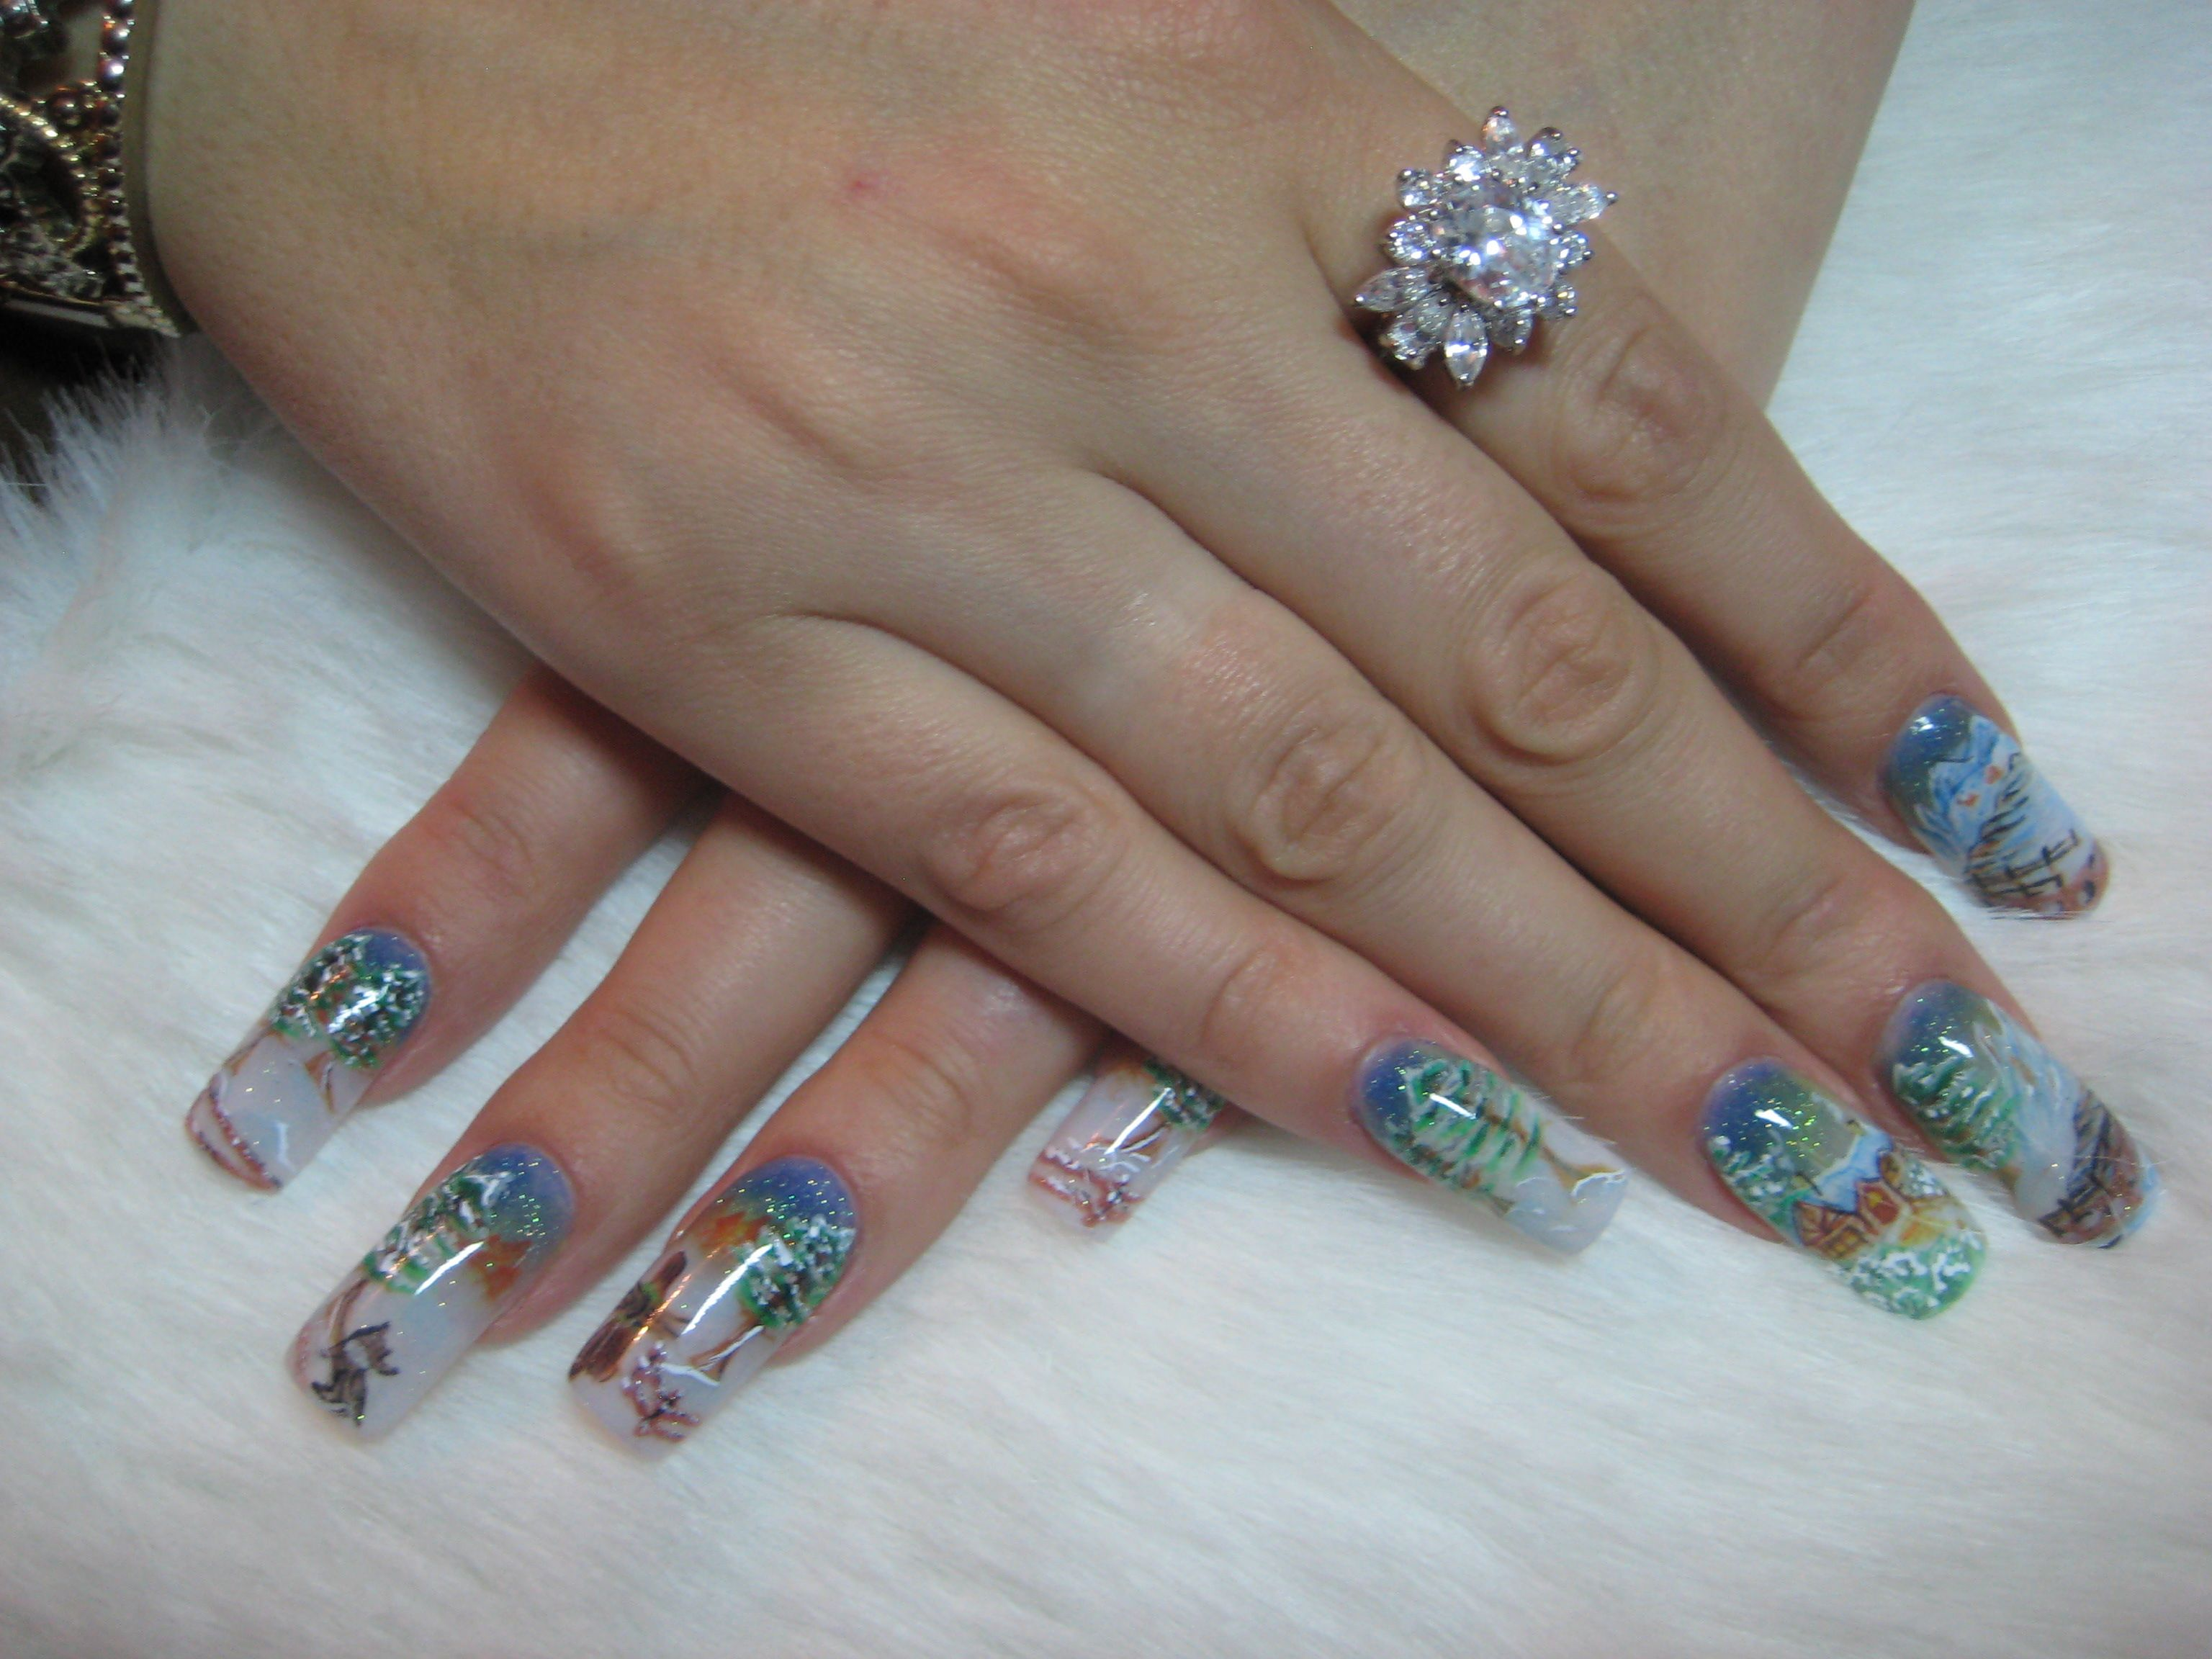 Nails by Tatiana Litvinov, Moldova